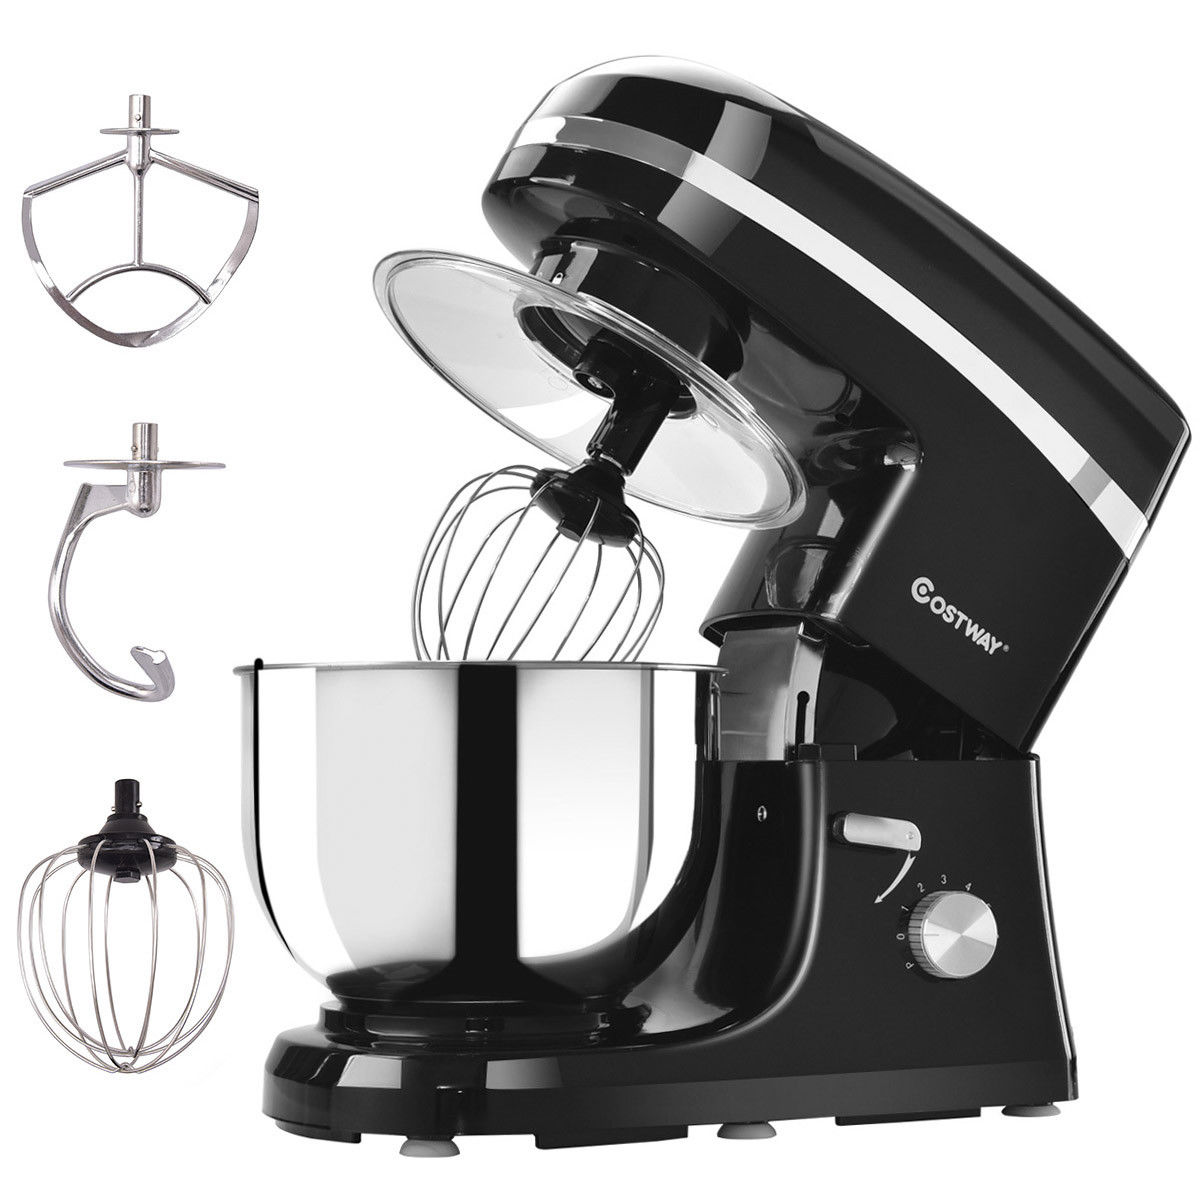 Costway Electric Food Stand Mixer